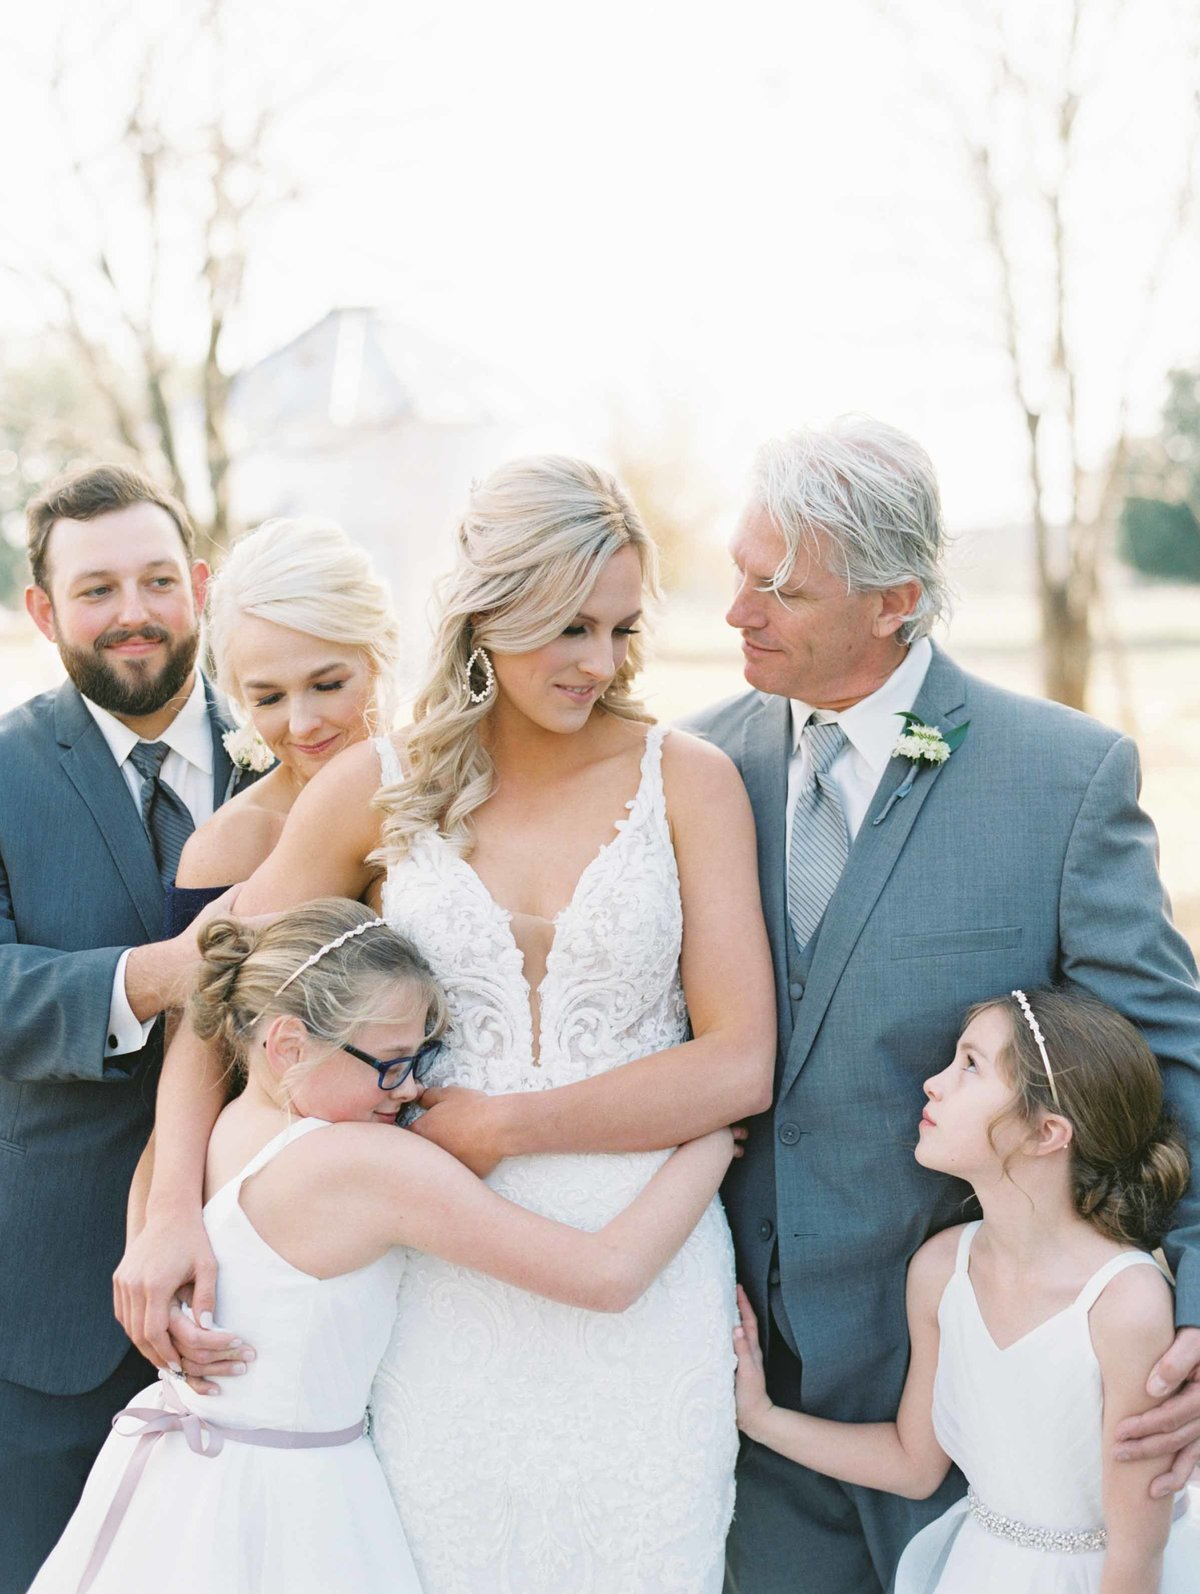 Angel_owens_photography_wedding29